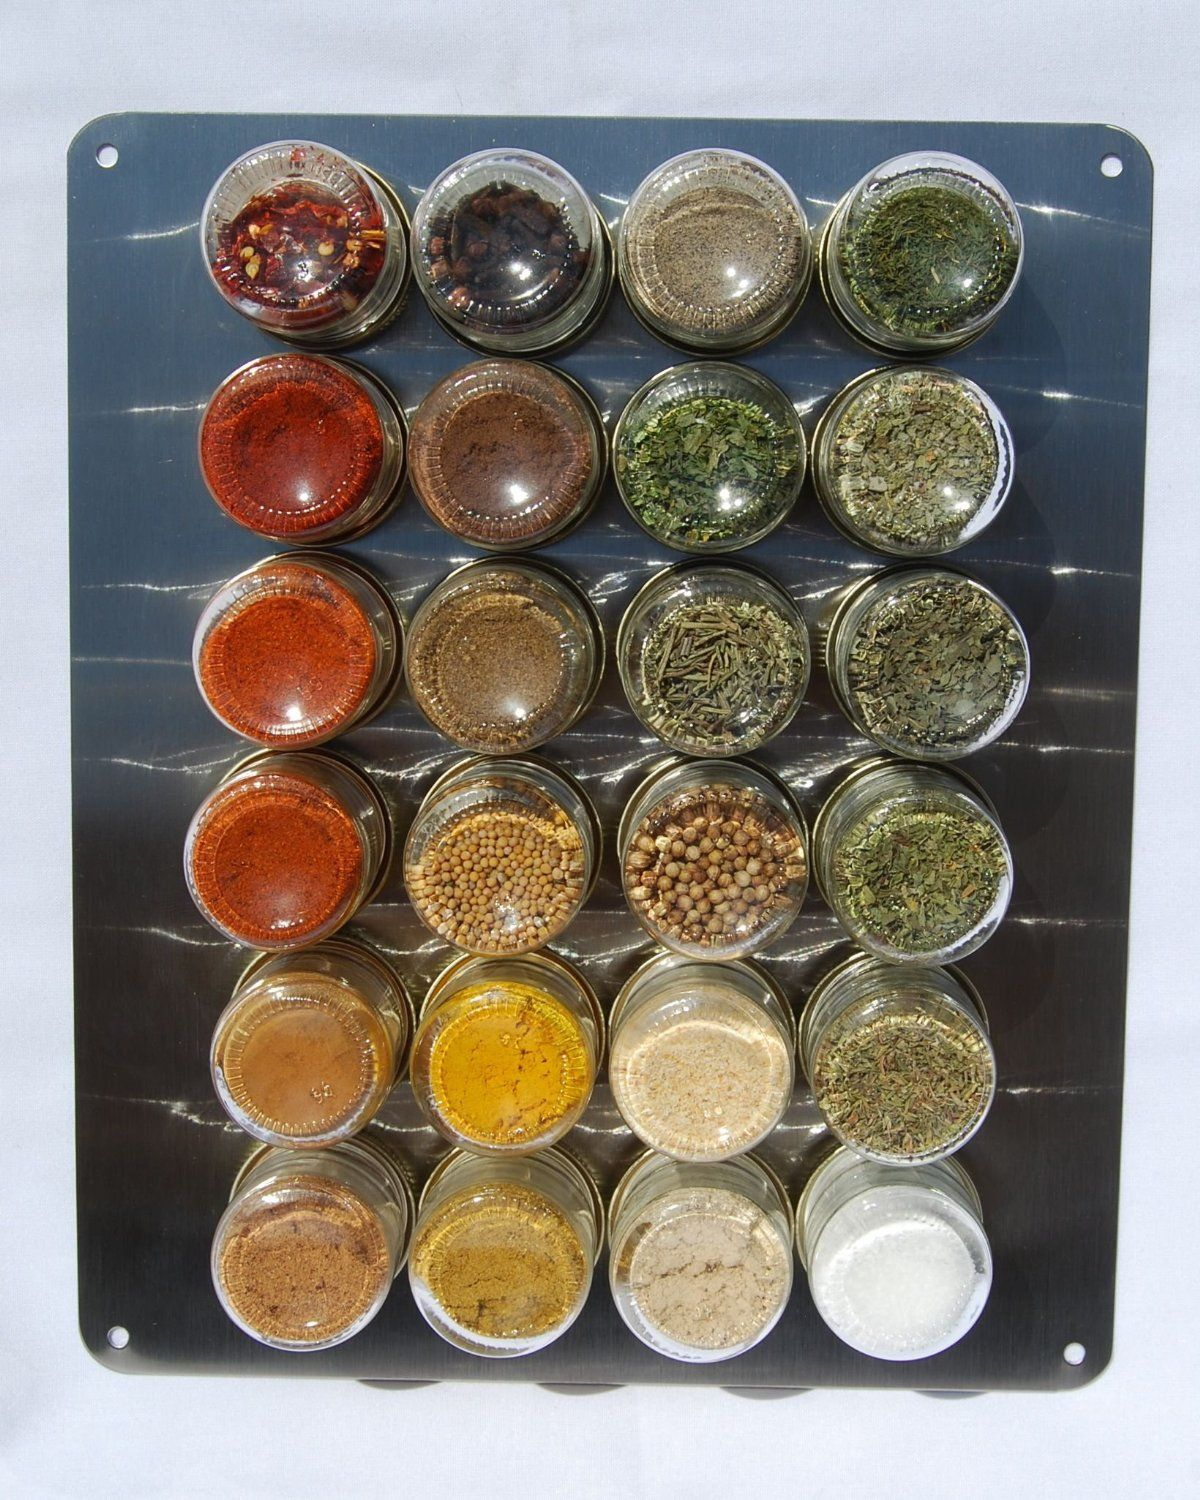 Organic Spice Rack Organic Magnetic Spice Rack With Spice Included Httpwwwamazonca